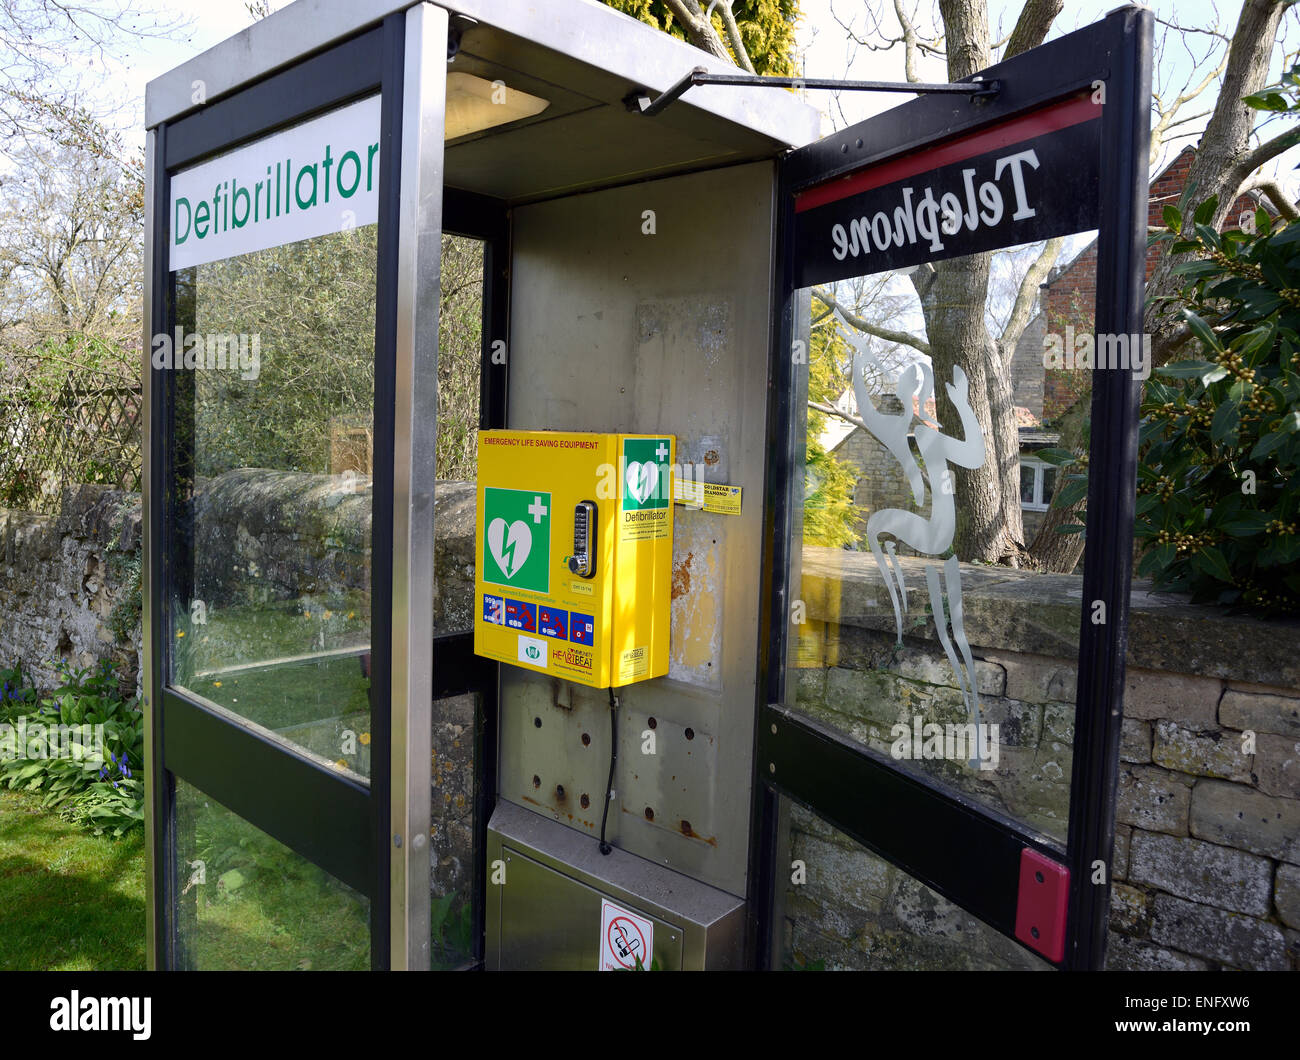 Community phone box converted into a community defibrillator - Stock Image